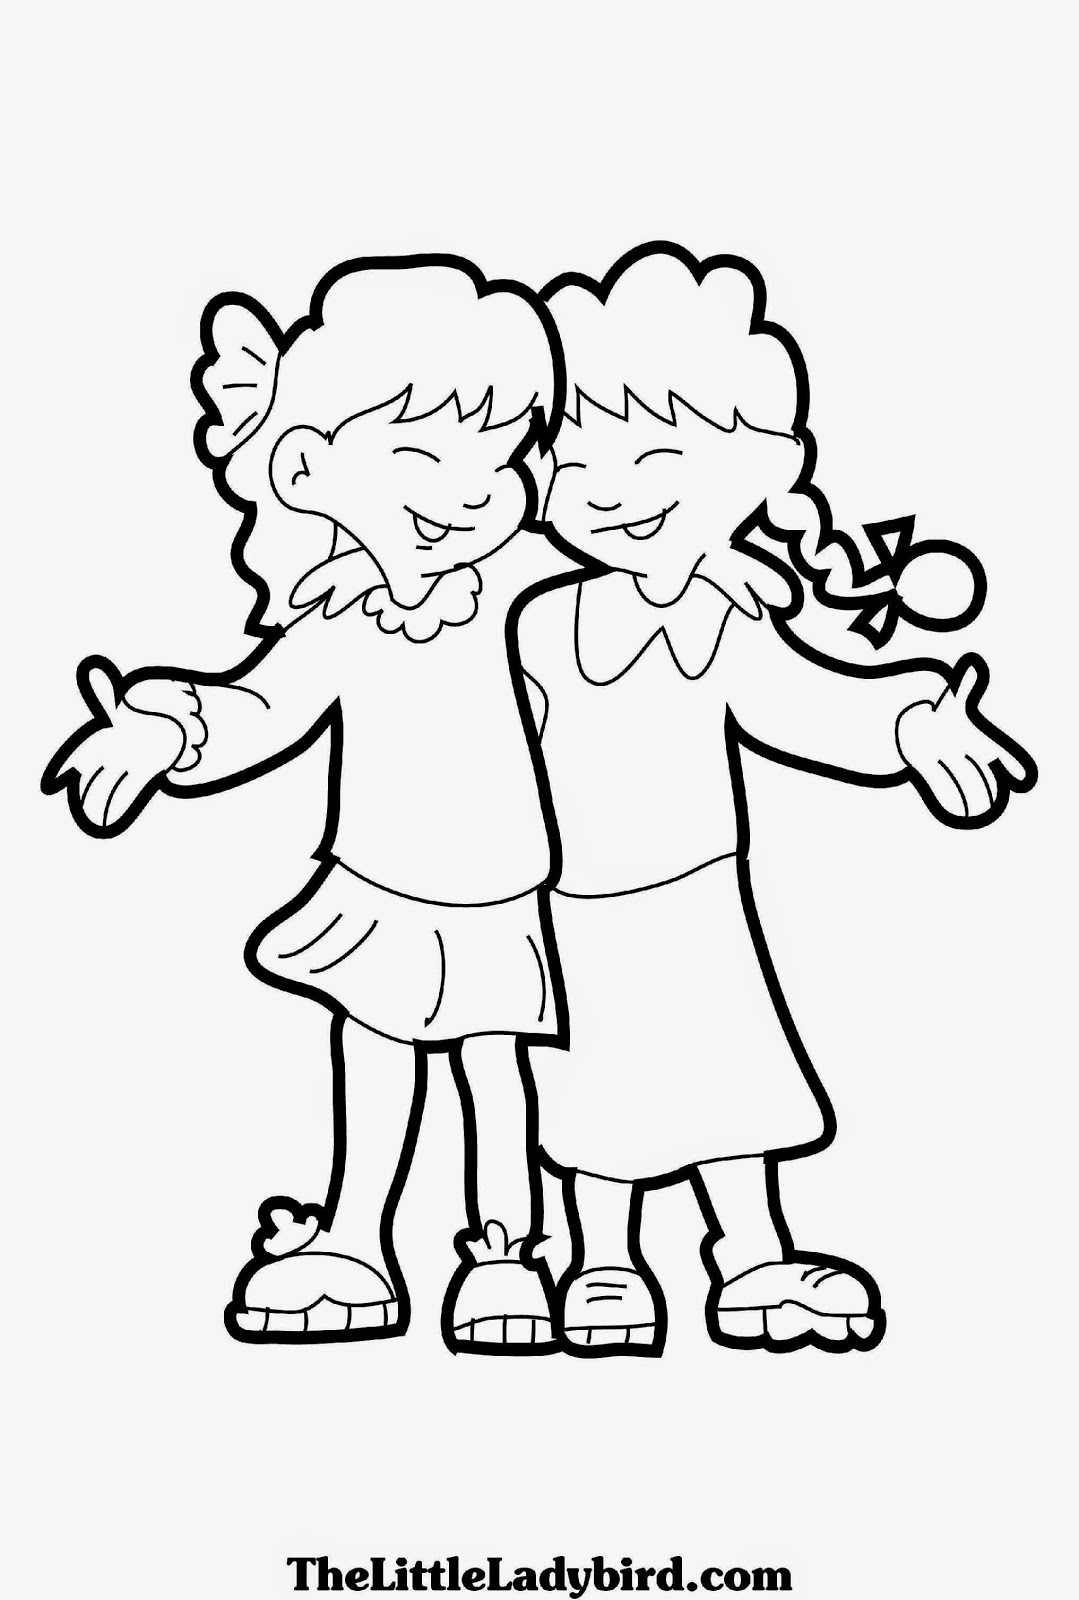 Best Friend Coloring Pages For Girls At Getcolorings